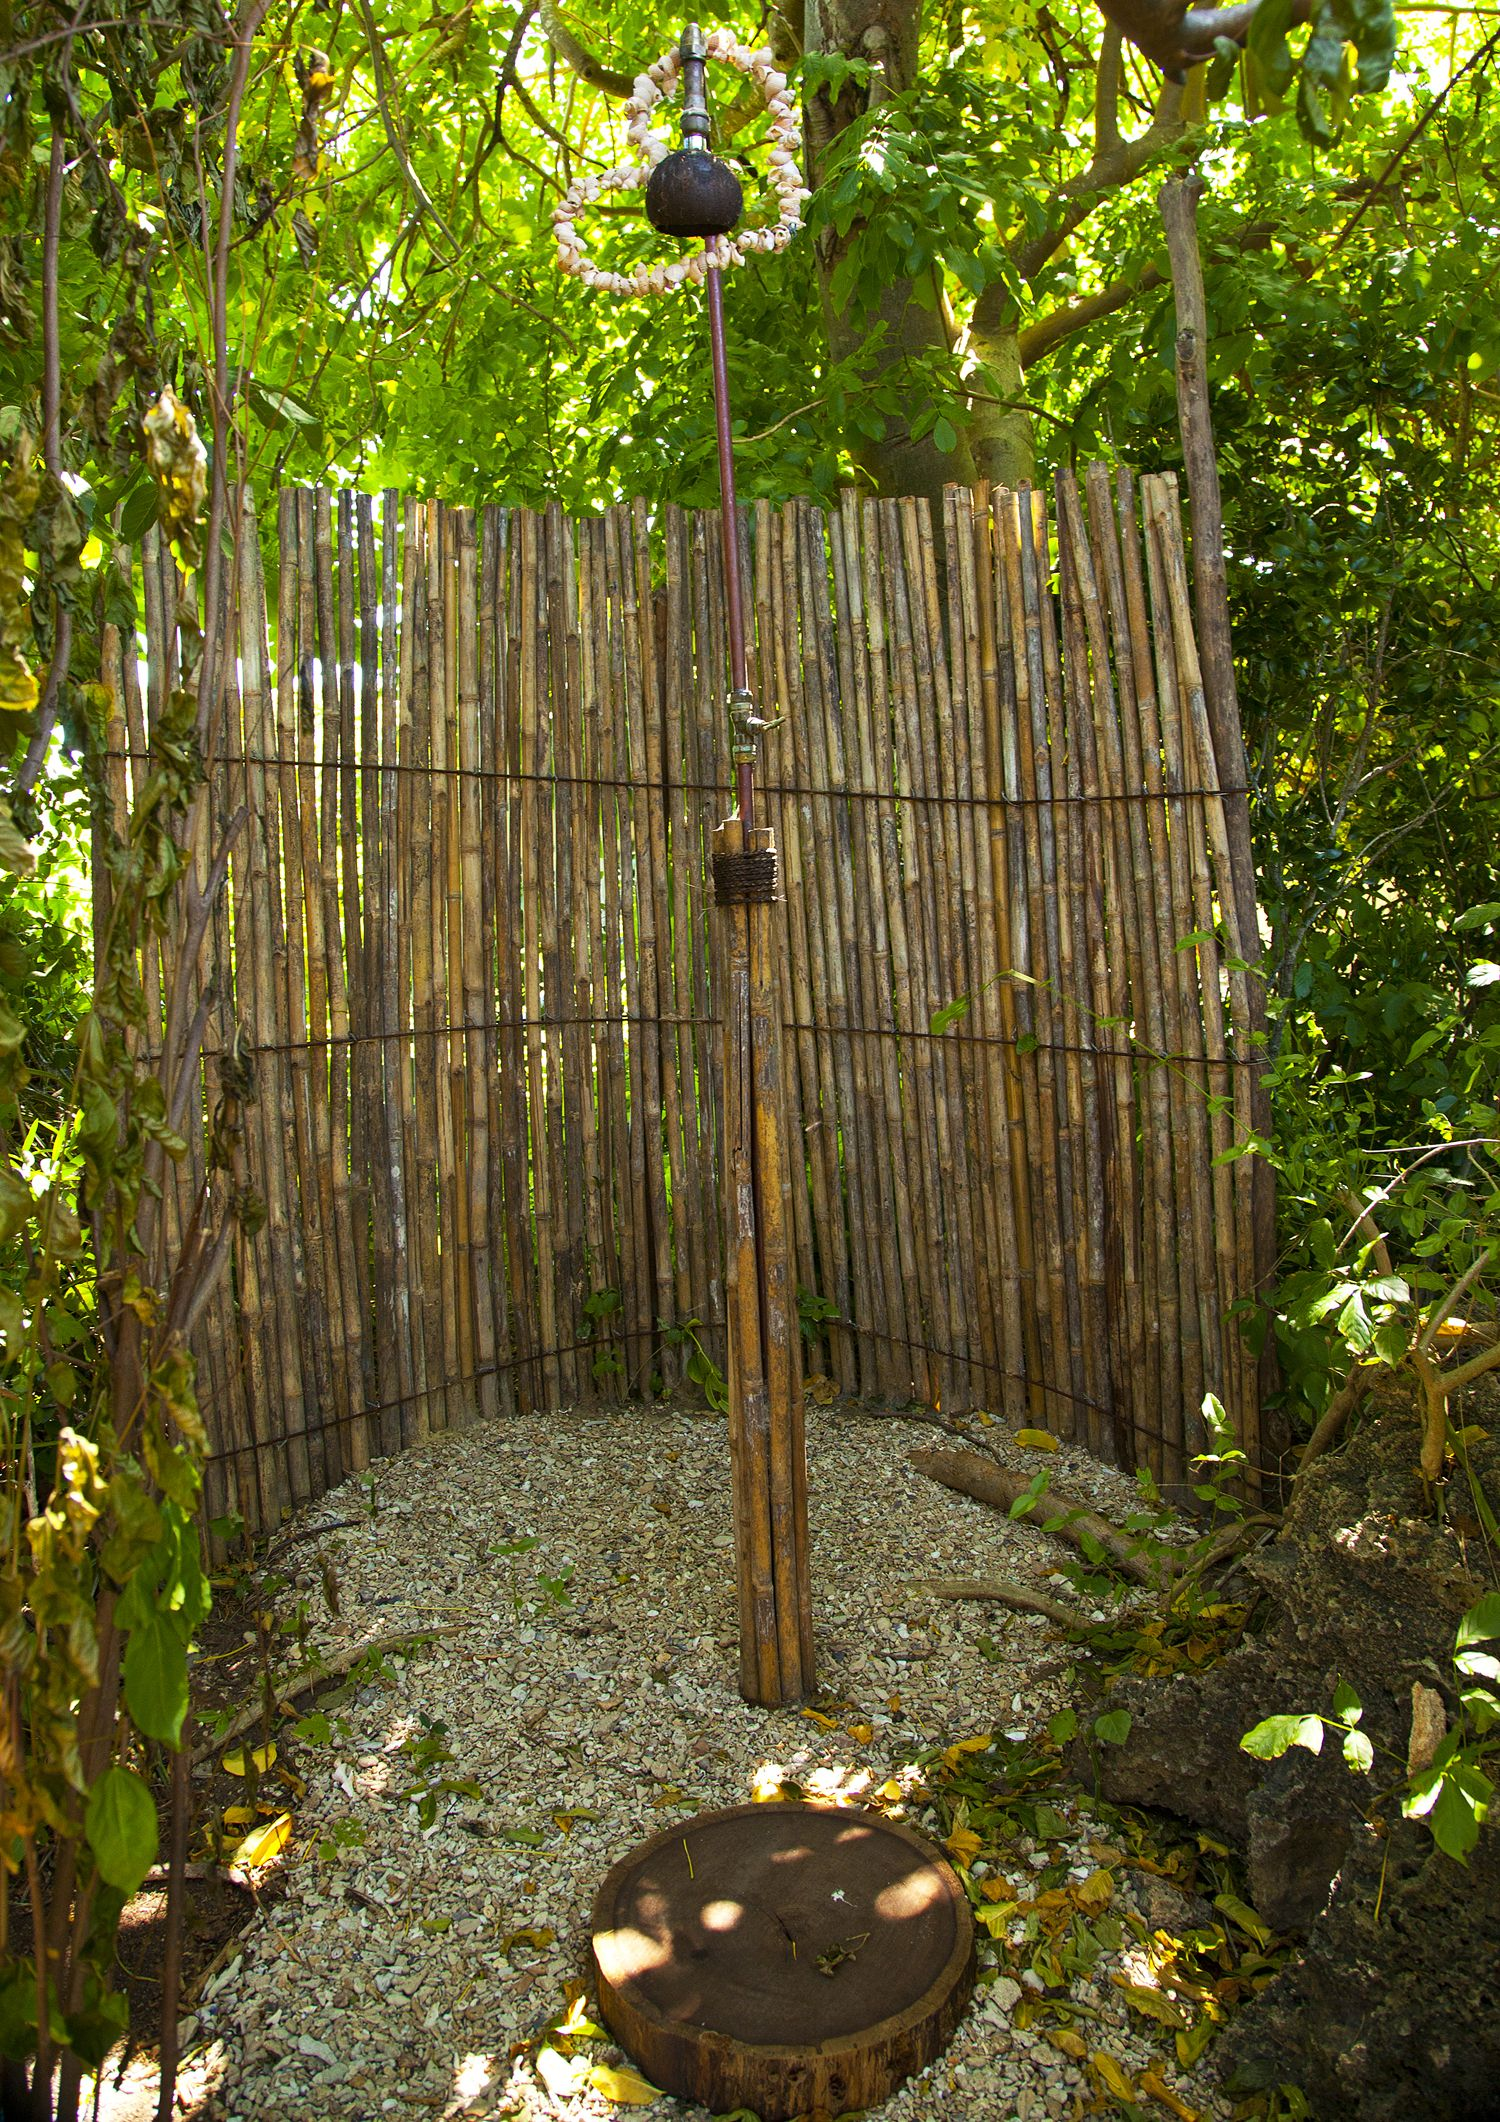 Bathroom rustic outdoor shower design with bamboo for Outdoor rock shower